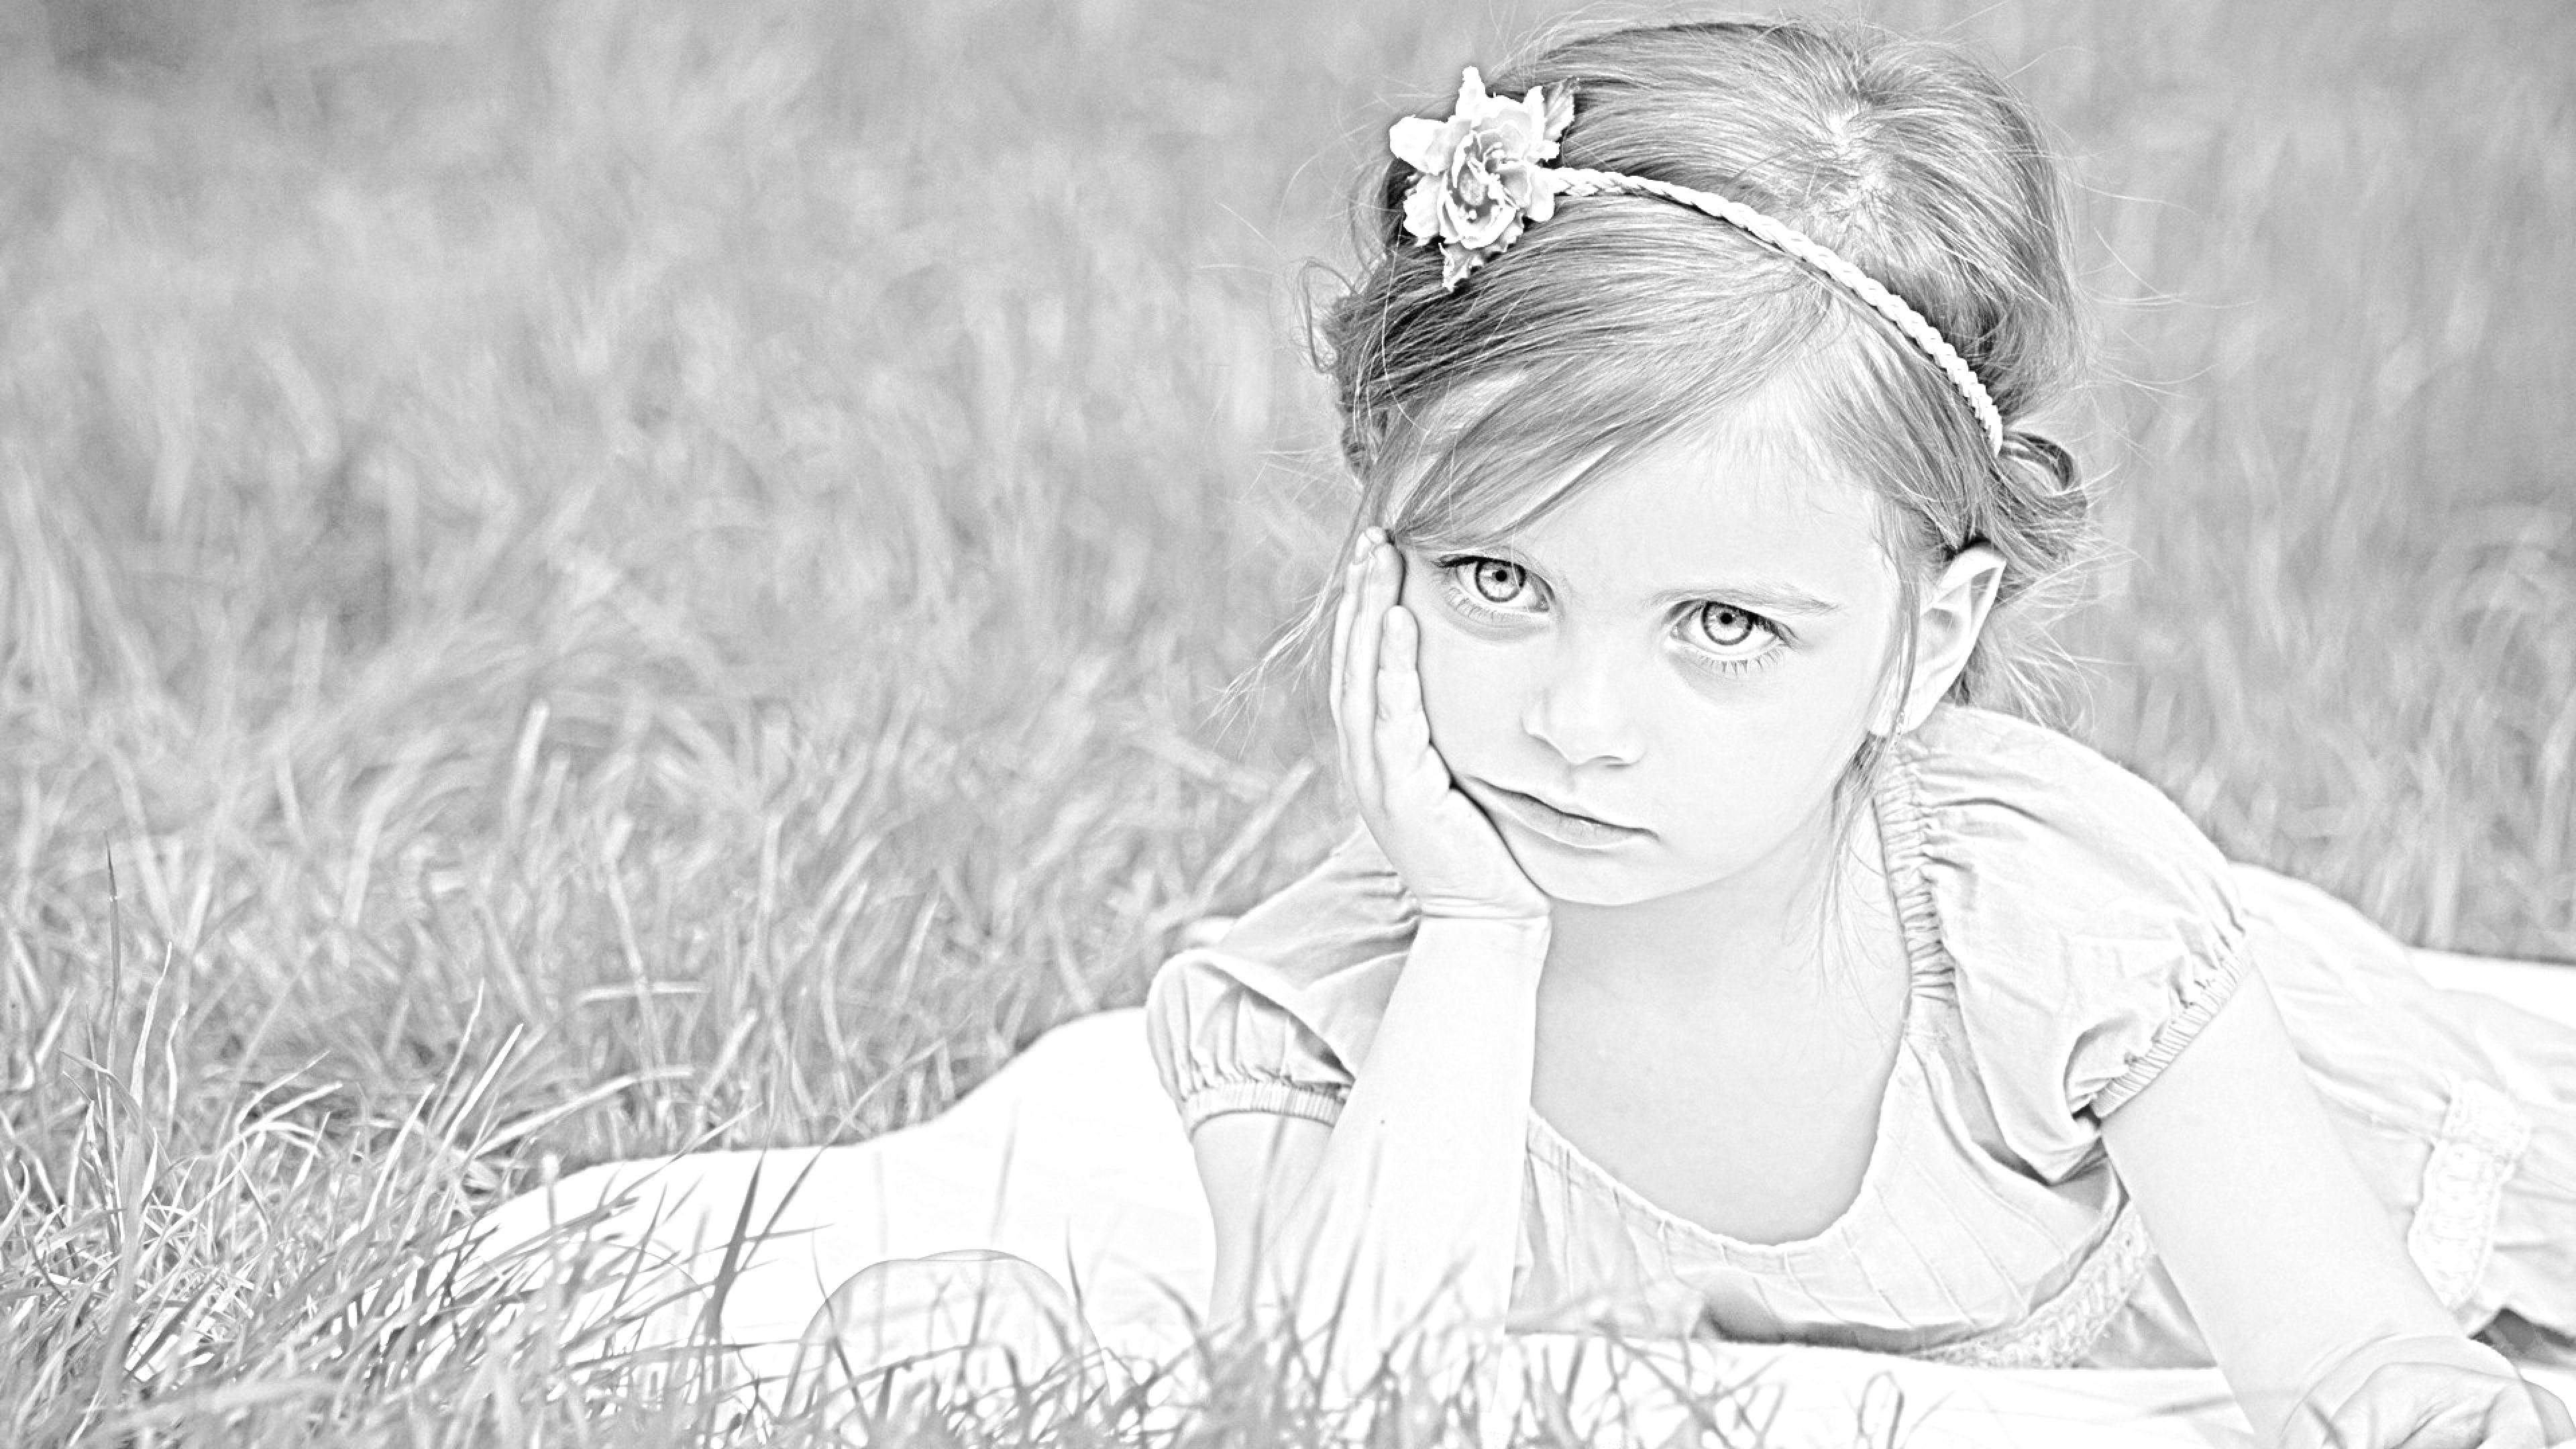 Turn Your Photo Into a Pencil Drawing